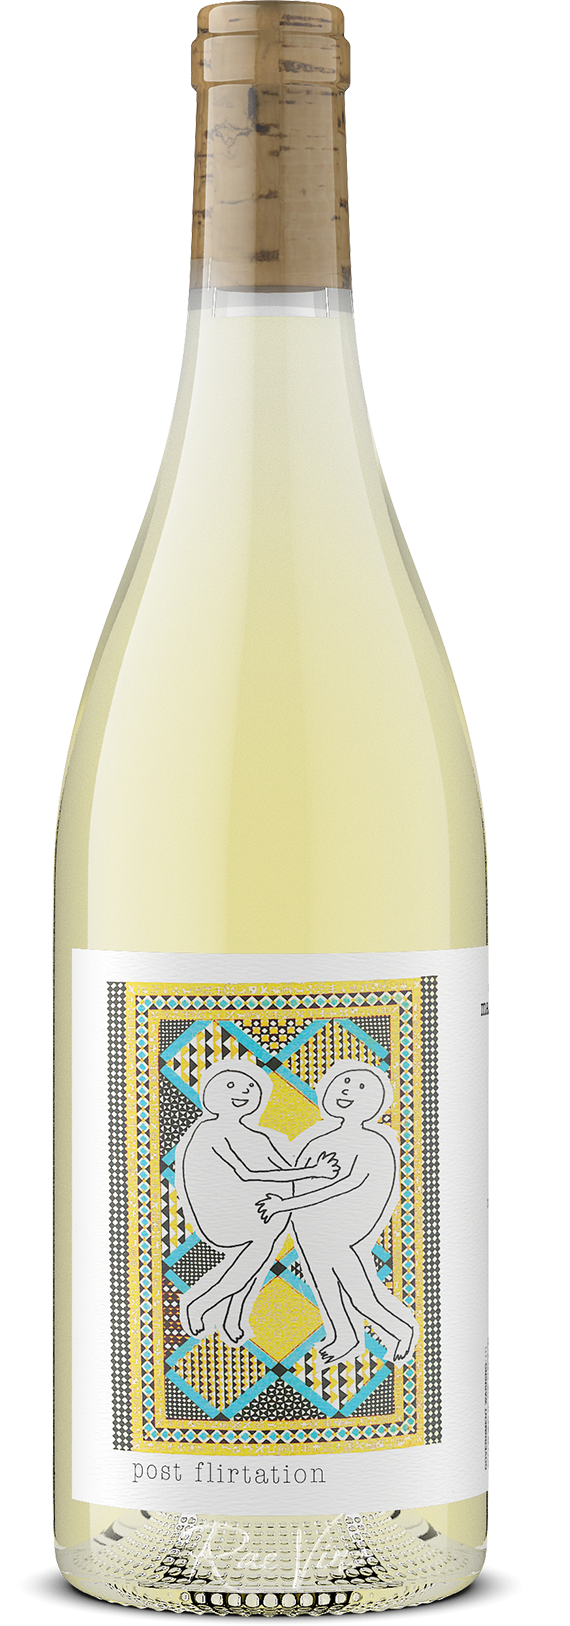 Martha Stoumen : 'Post Flirtation' : White Blend | 2018